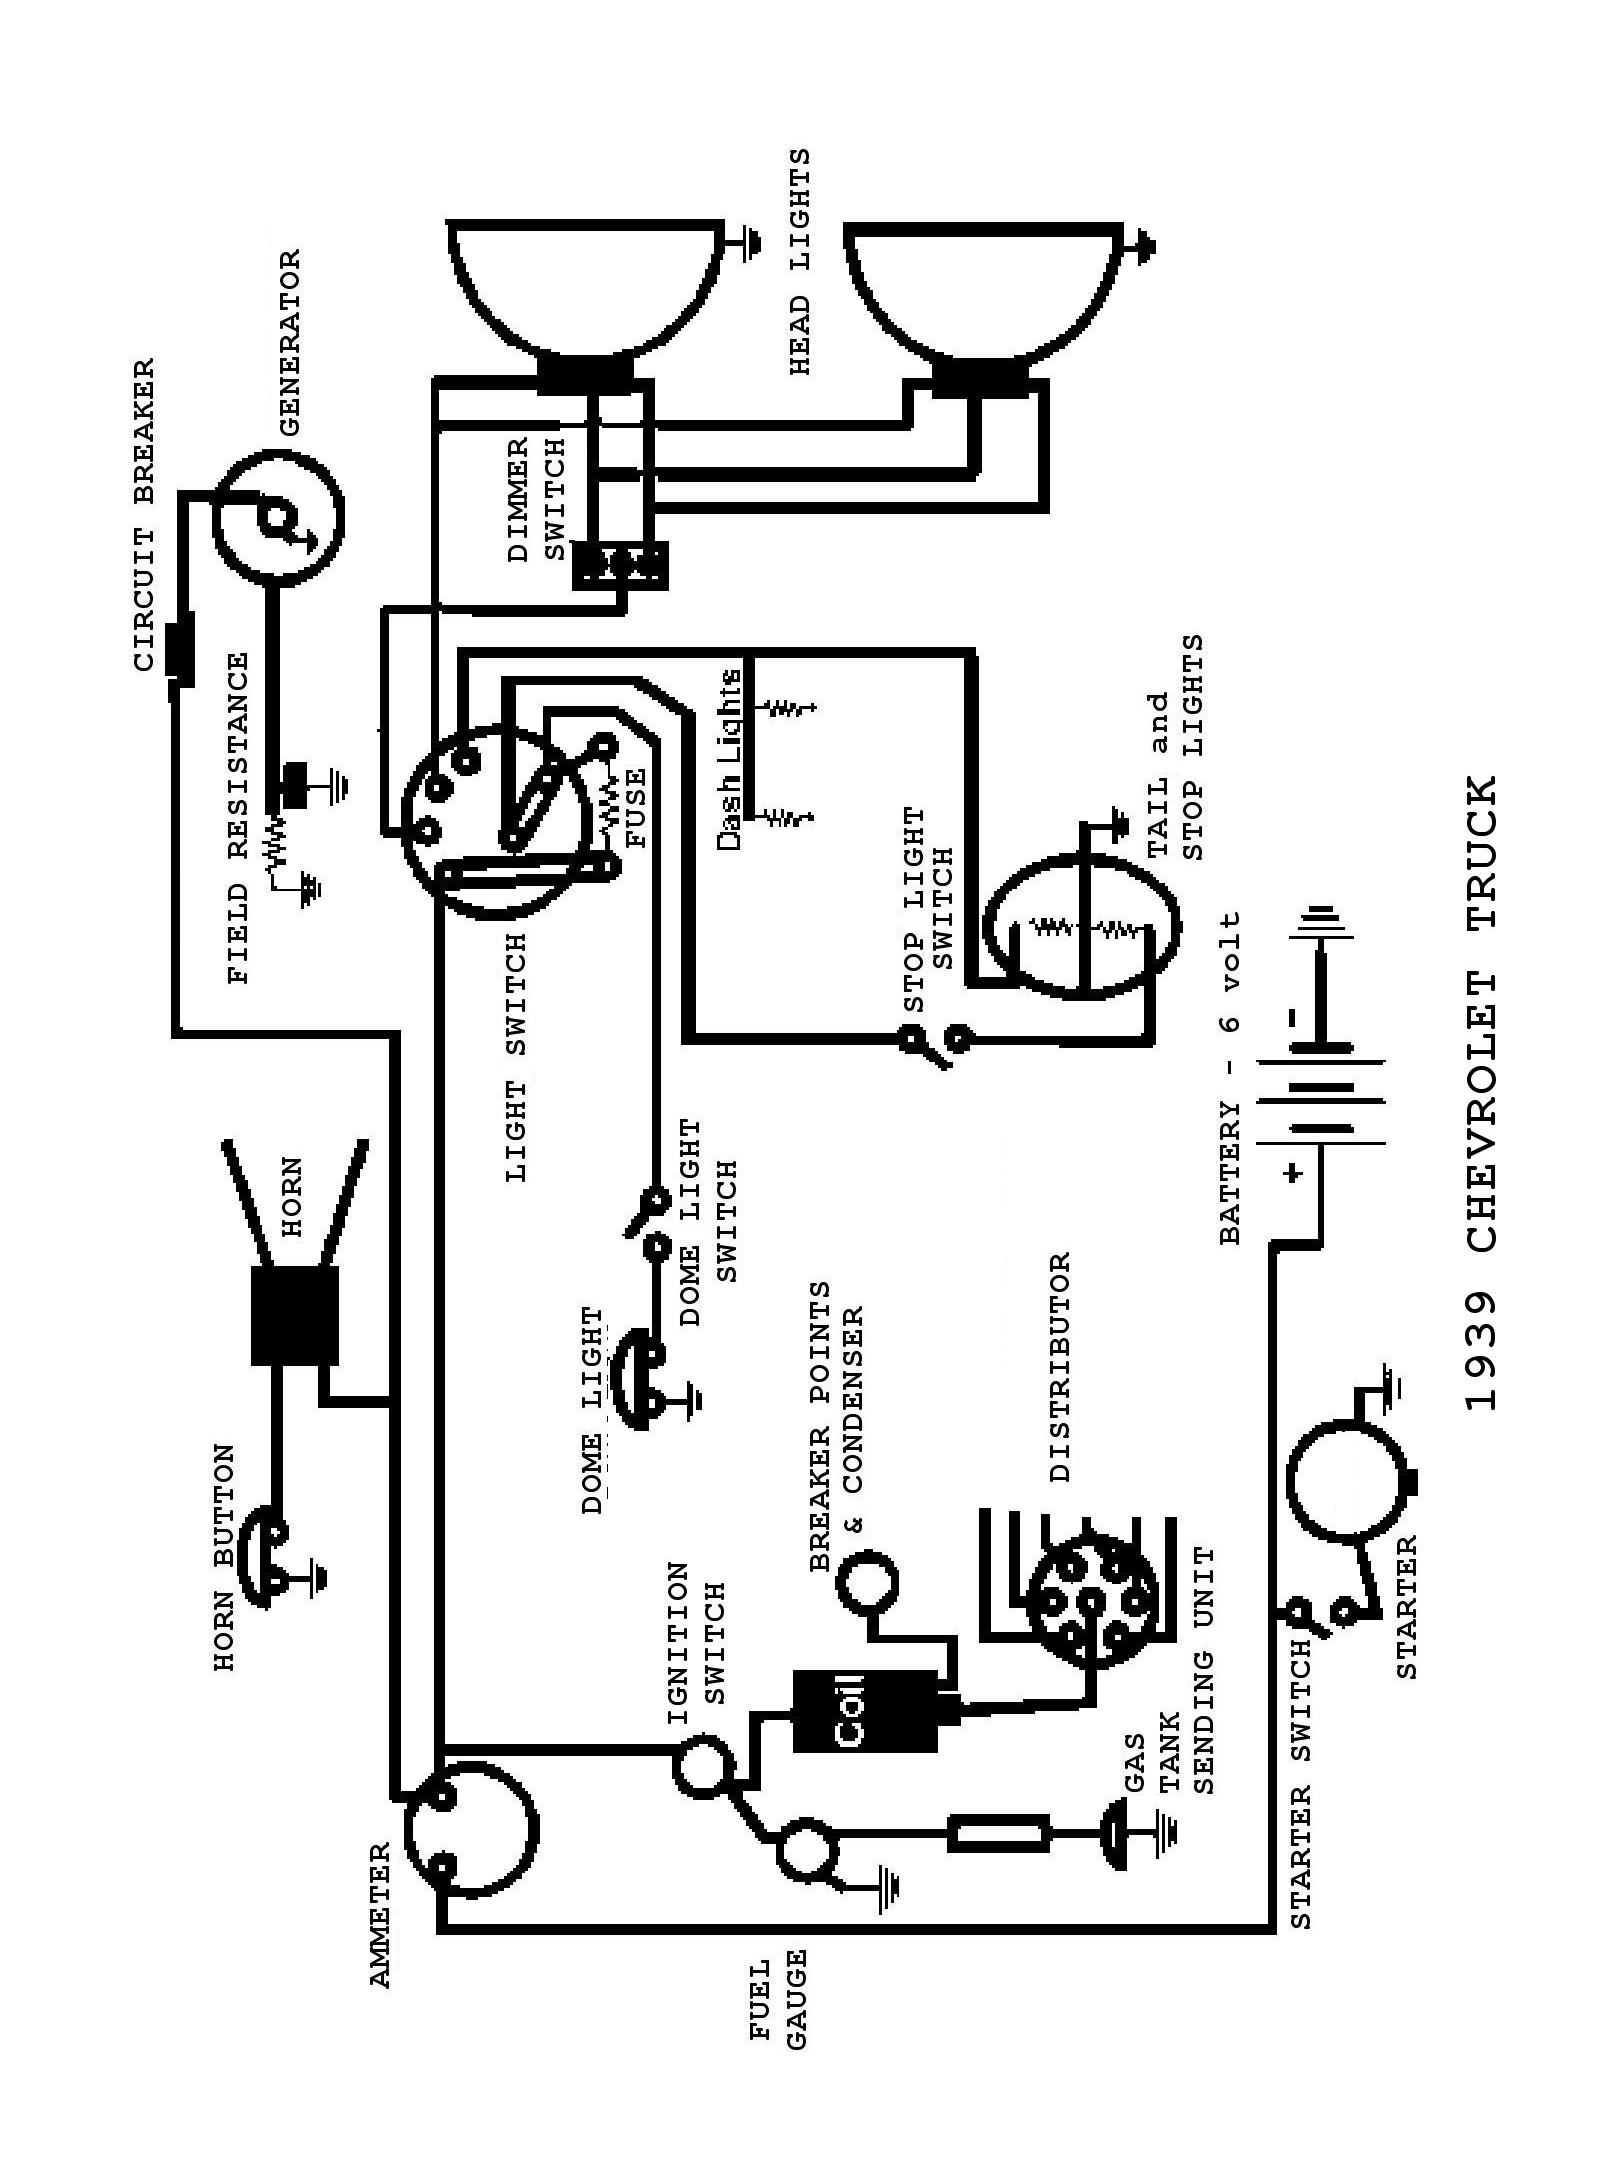 39truck ihc truck wiring diagrams mazda truck wiring diagrams \u2022 free  at crackthecode.co